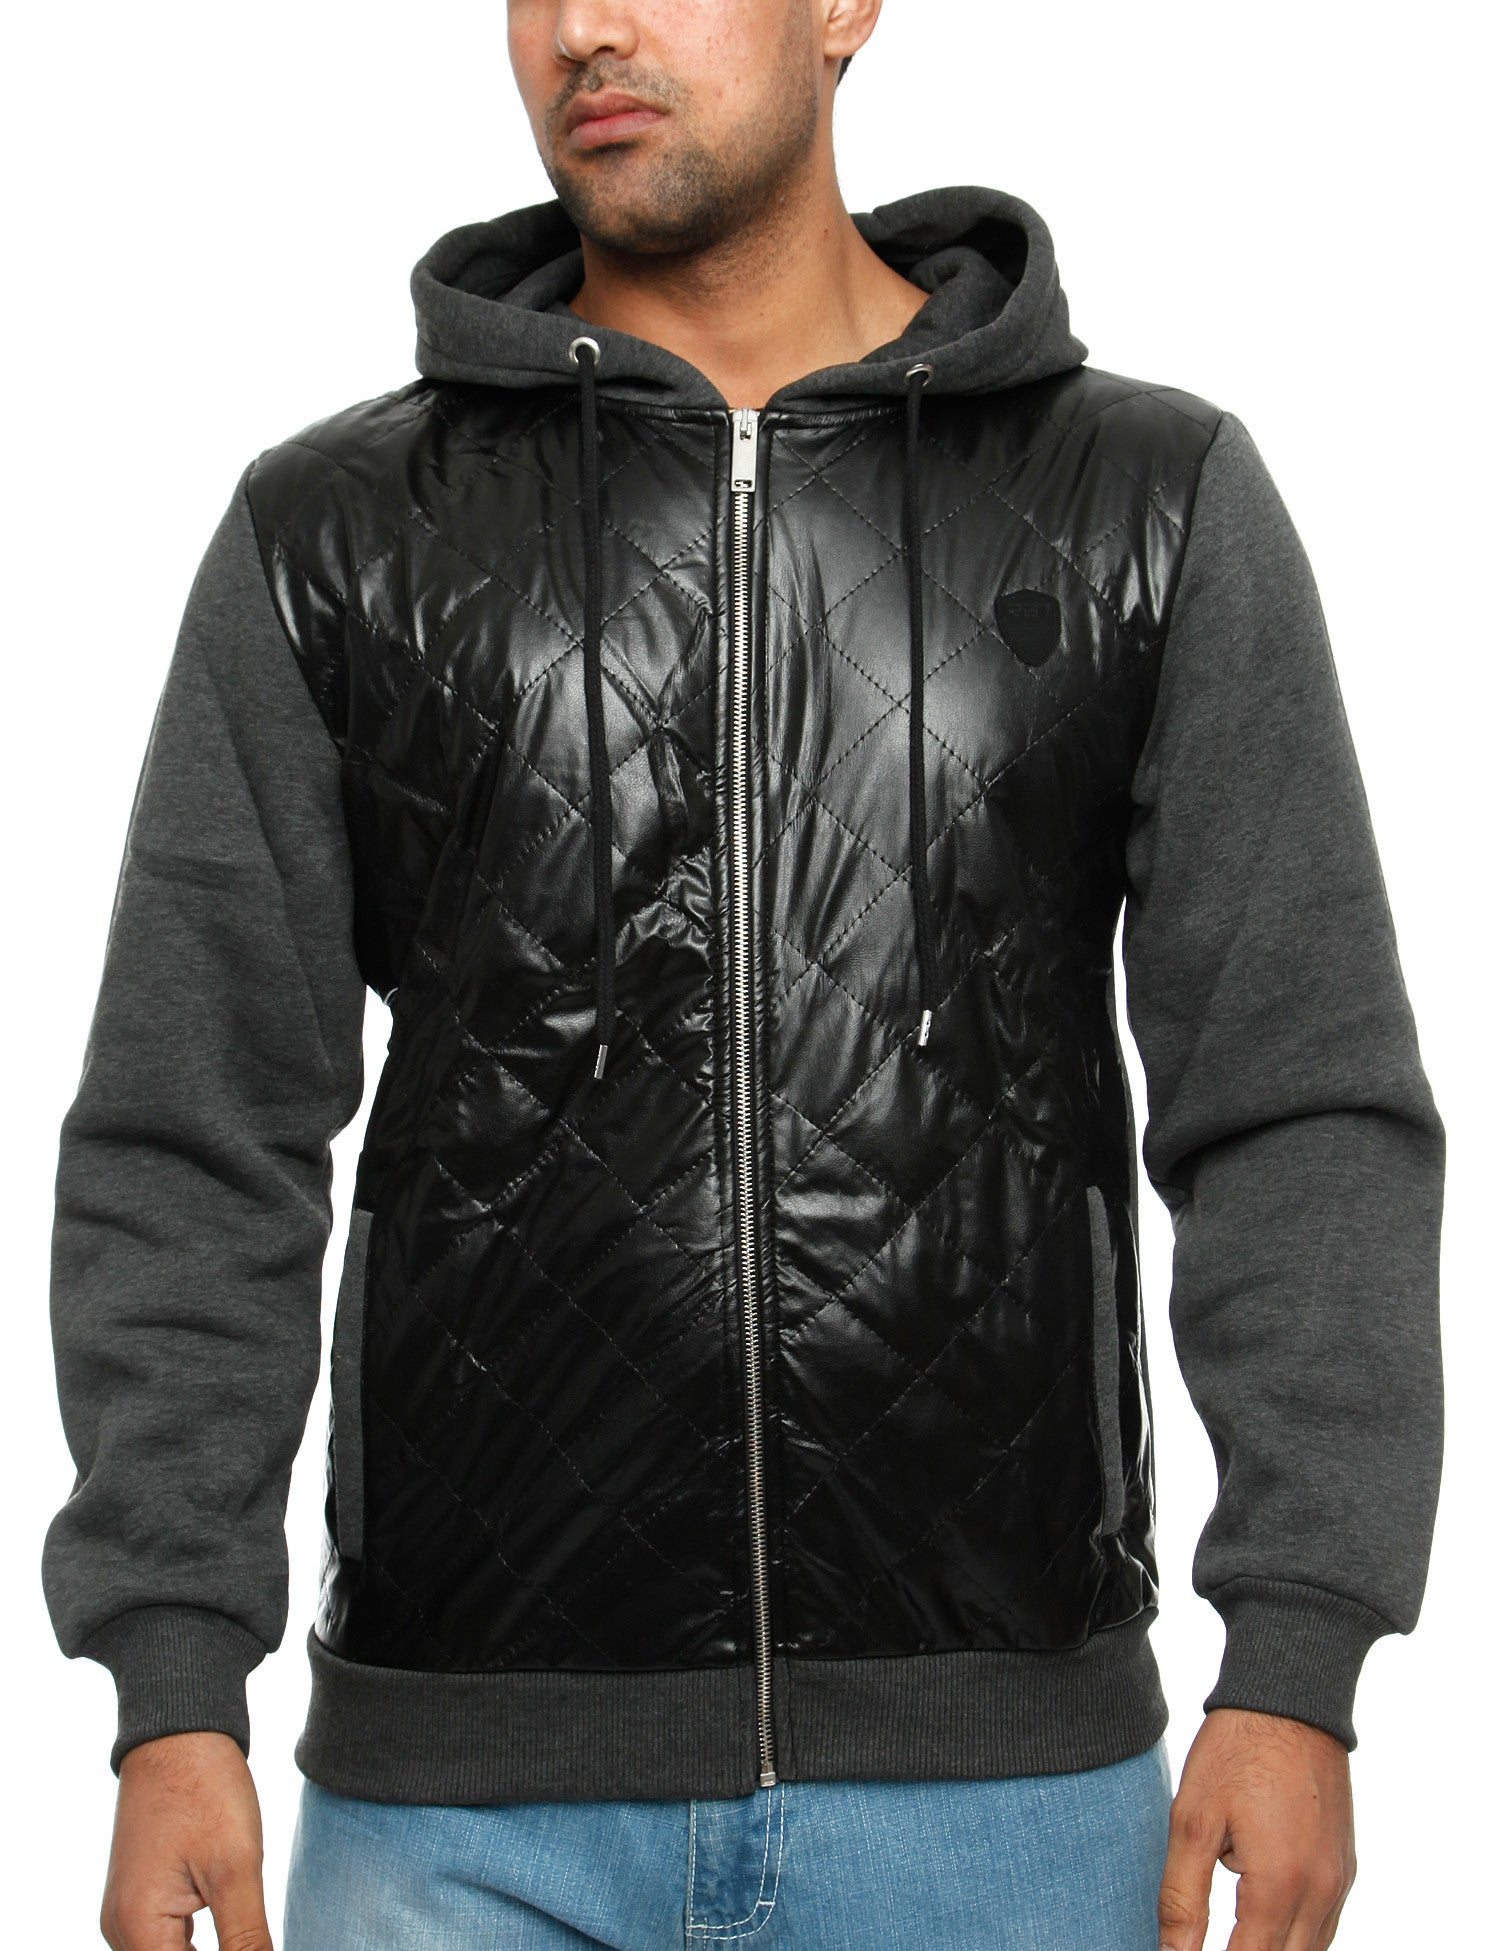 Free Side Al Mito Zip Hoody 5K-1312 Anthracite Grey